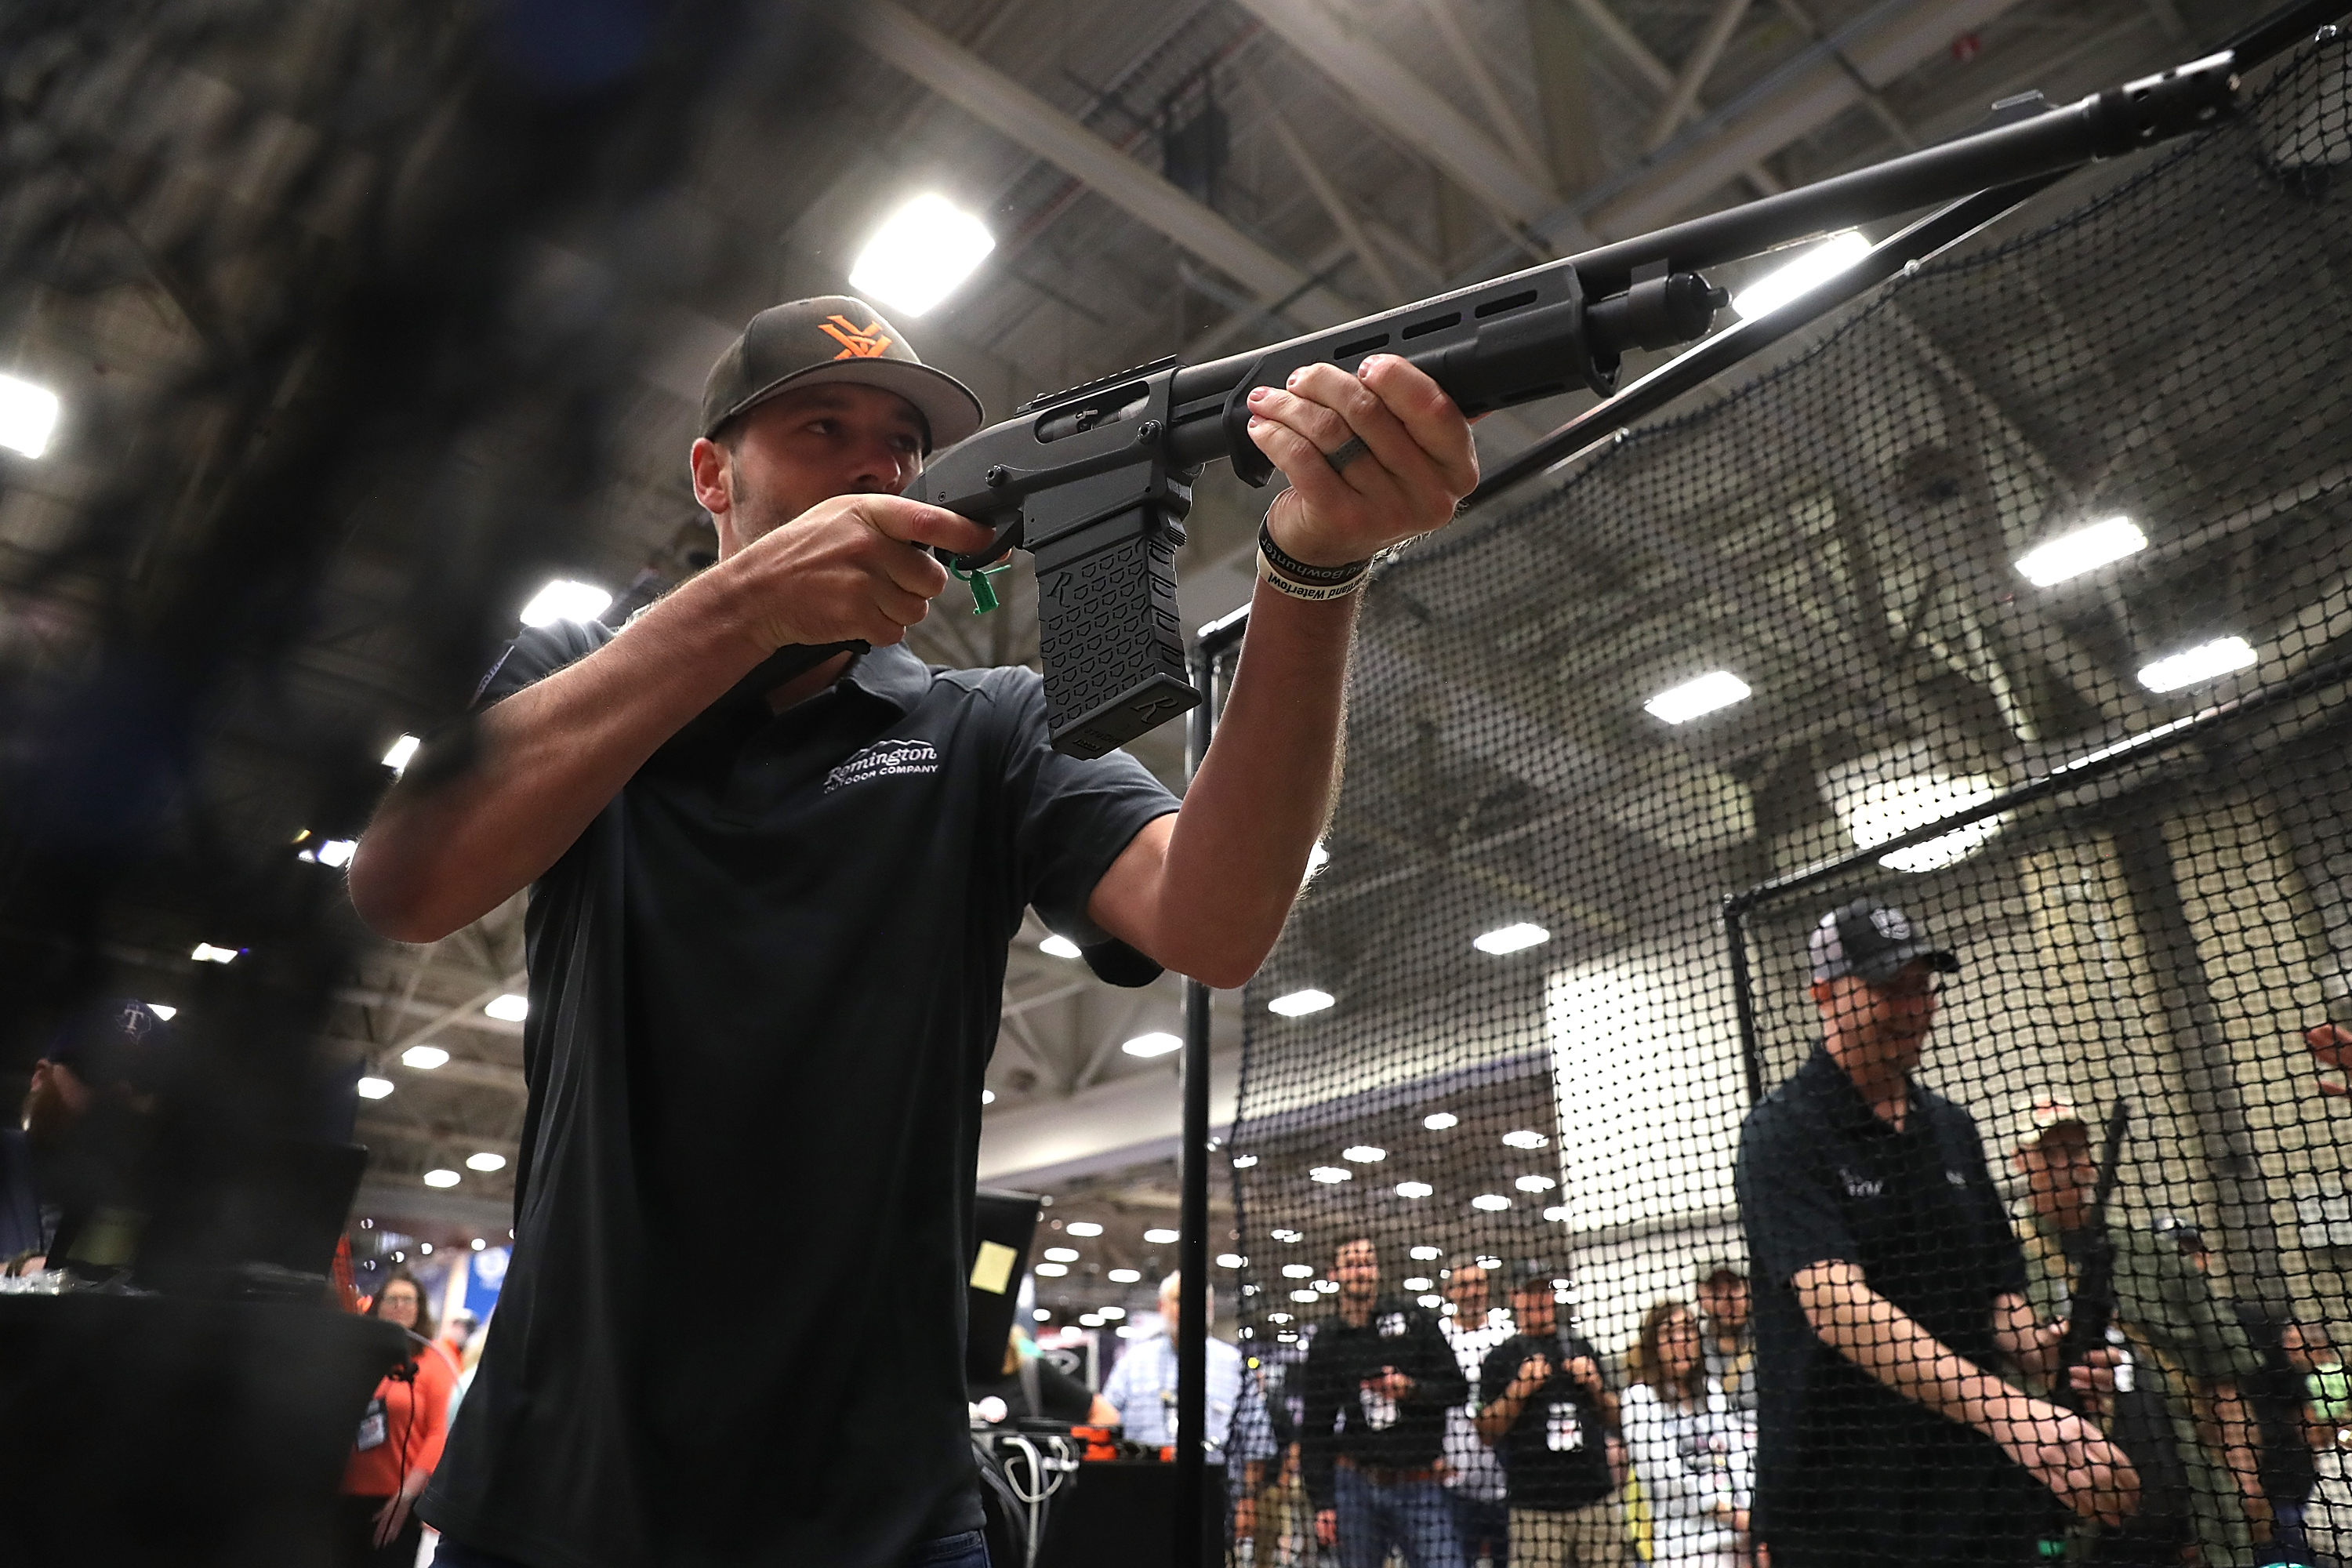 DALLAS, TX - MAY 05: An attendee participates in a gun reloading competition at the Remington booth during the NRA Annual Meeting & Exhibits at the Kay Bailey Hutchison Convention Center on May 5, 2018 in Dallas, Texas. The National Rifle Association's annual meeting and exhibit runs through Sunday. (Justin Sullivan/Getty Images)